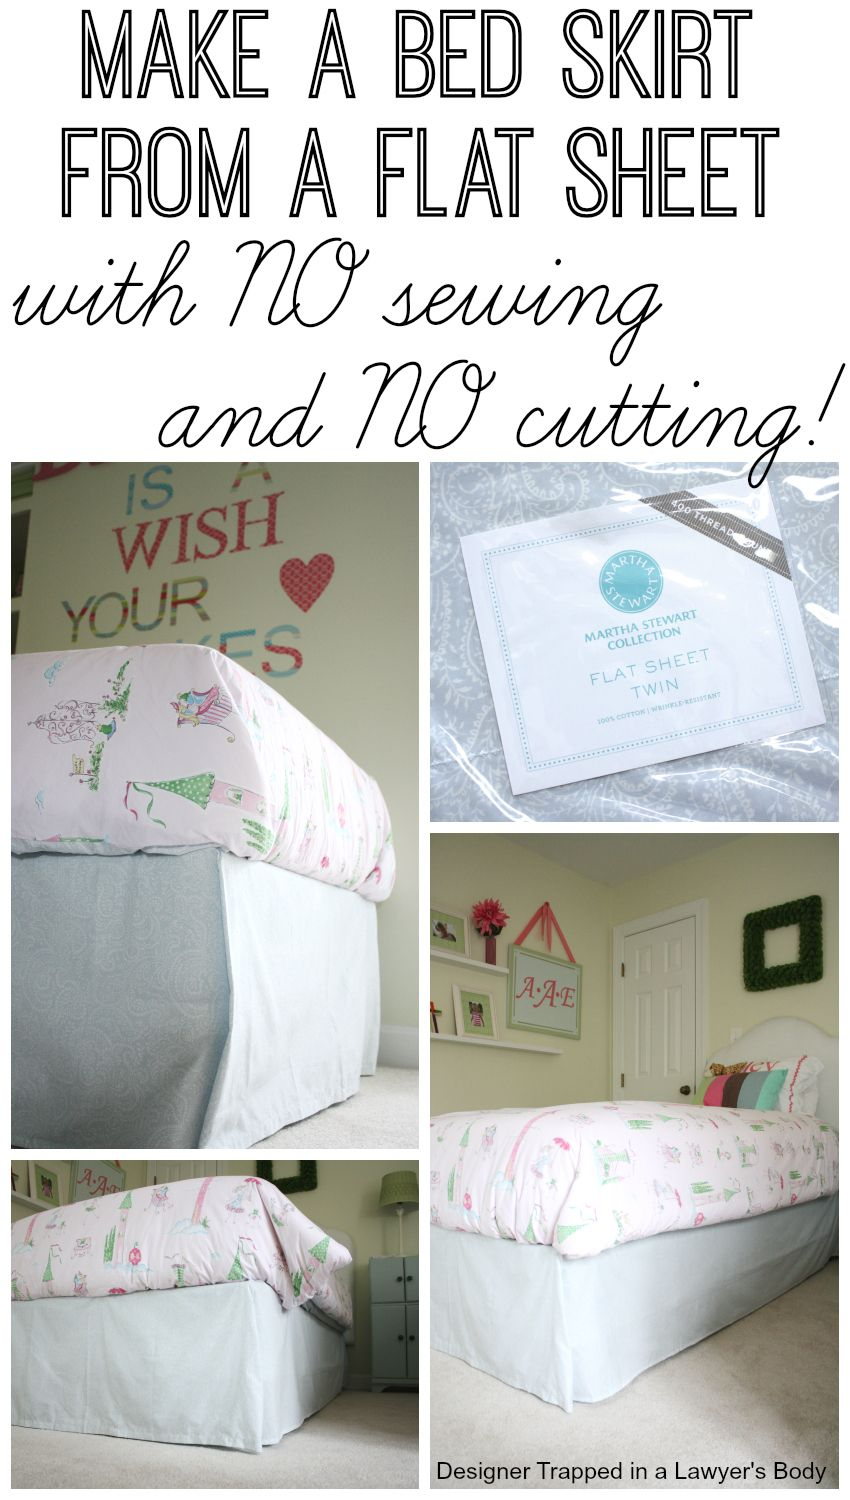 NoSew Bedskirt Tutorial! Mind Blowingly Simple! Diy bed